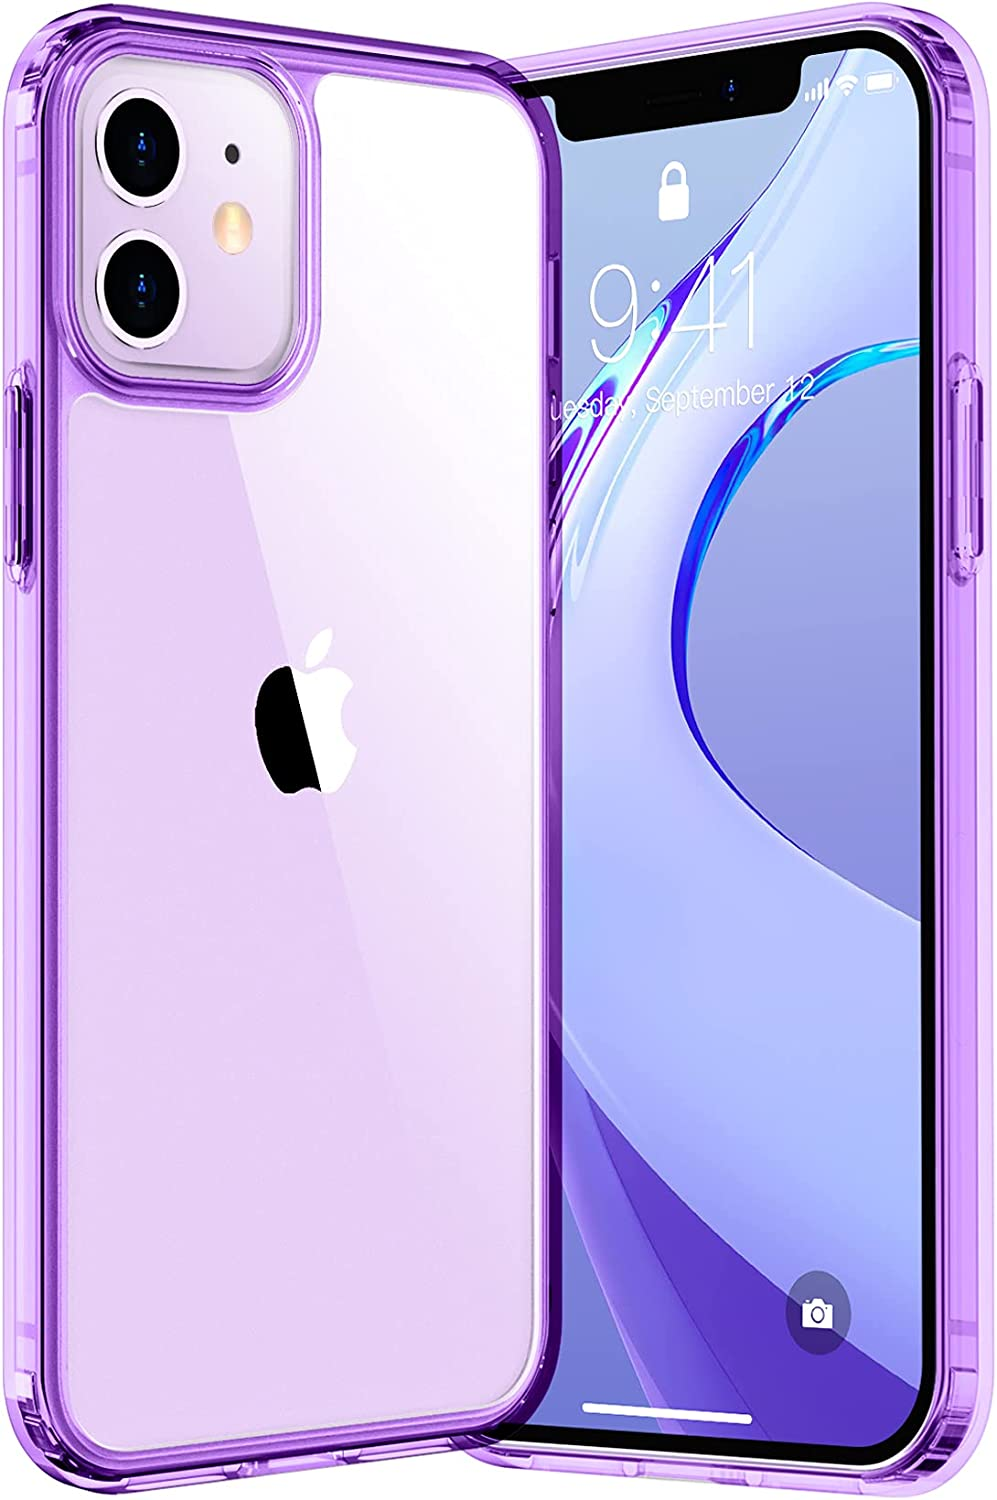 Red2Fire Crystal Clear Designed for iPhone 12 Case iPhone 12 Pro Case [Not Yellowing] Slim Fit Hard PC Back Phone Case Soft Bumper Protective Case for iPhone 12 Pro 6.1 inch